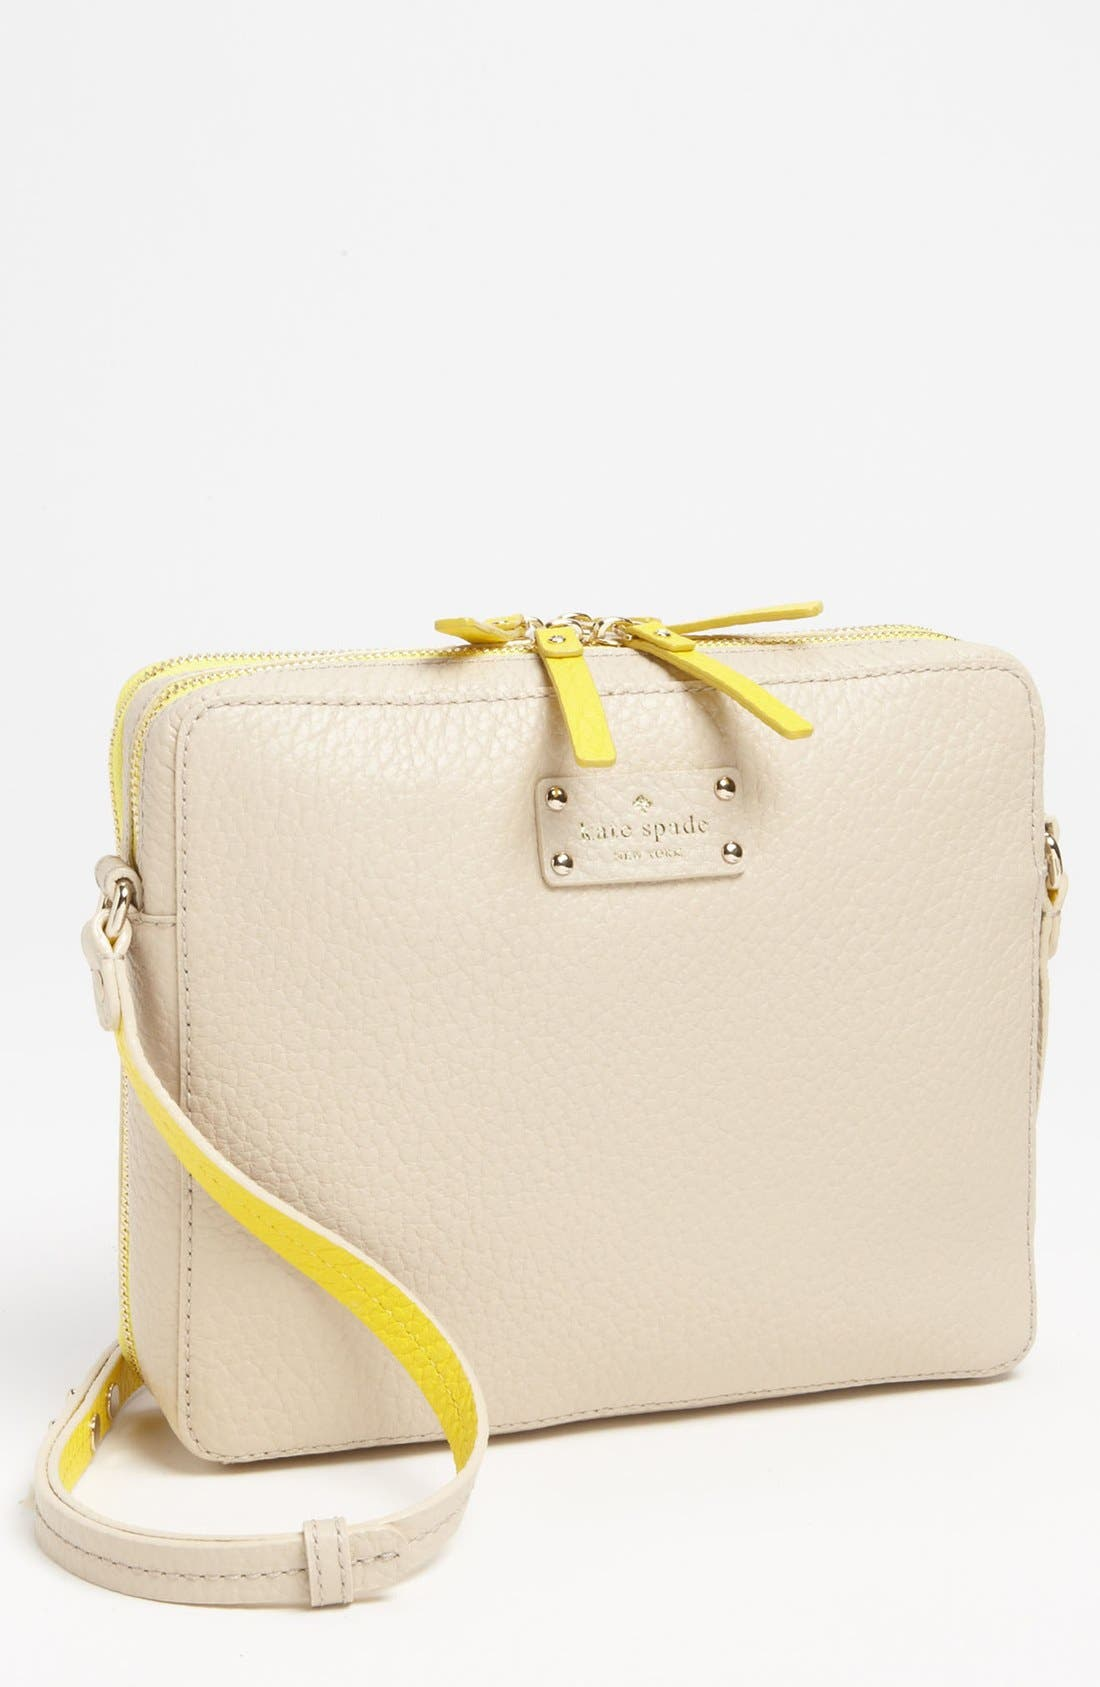 Alternate Image 1 Selected - kate spade new york 'grove court - jordan' crossbody bag with iPad case